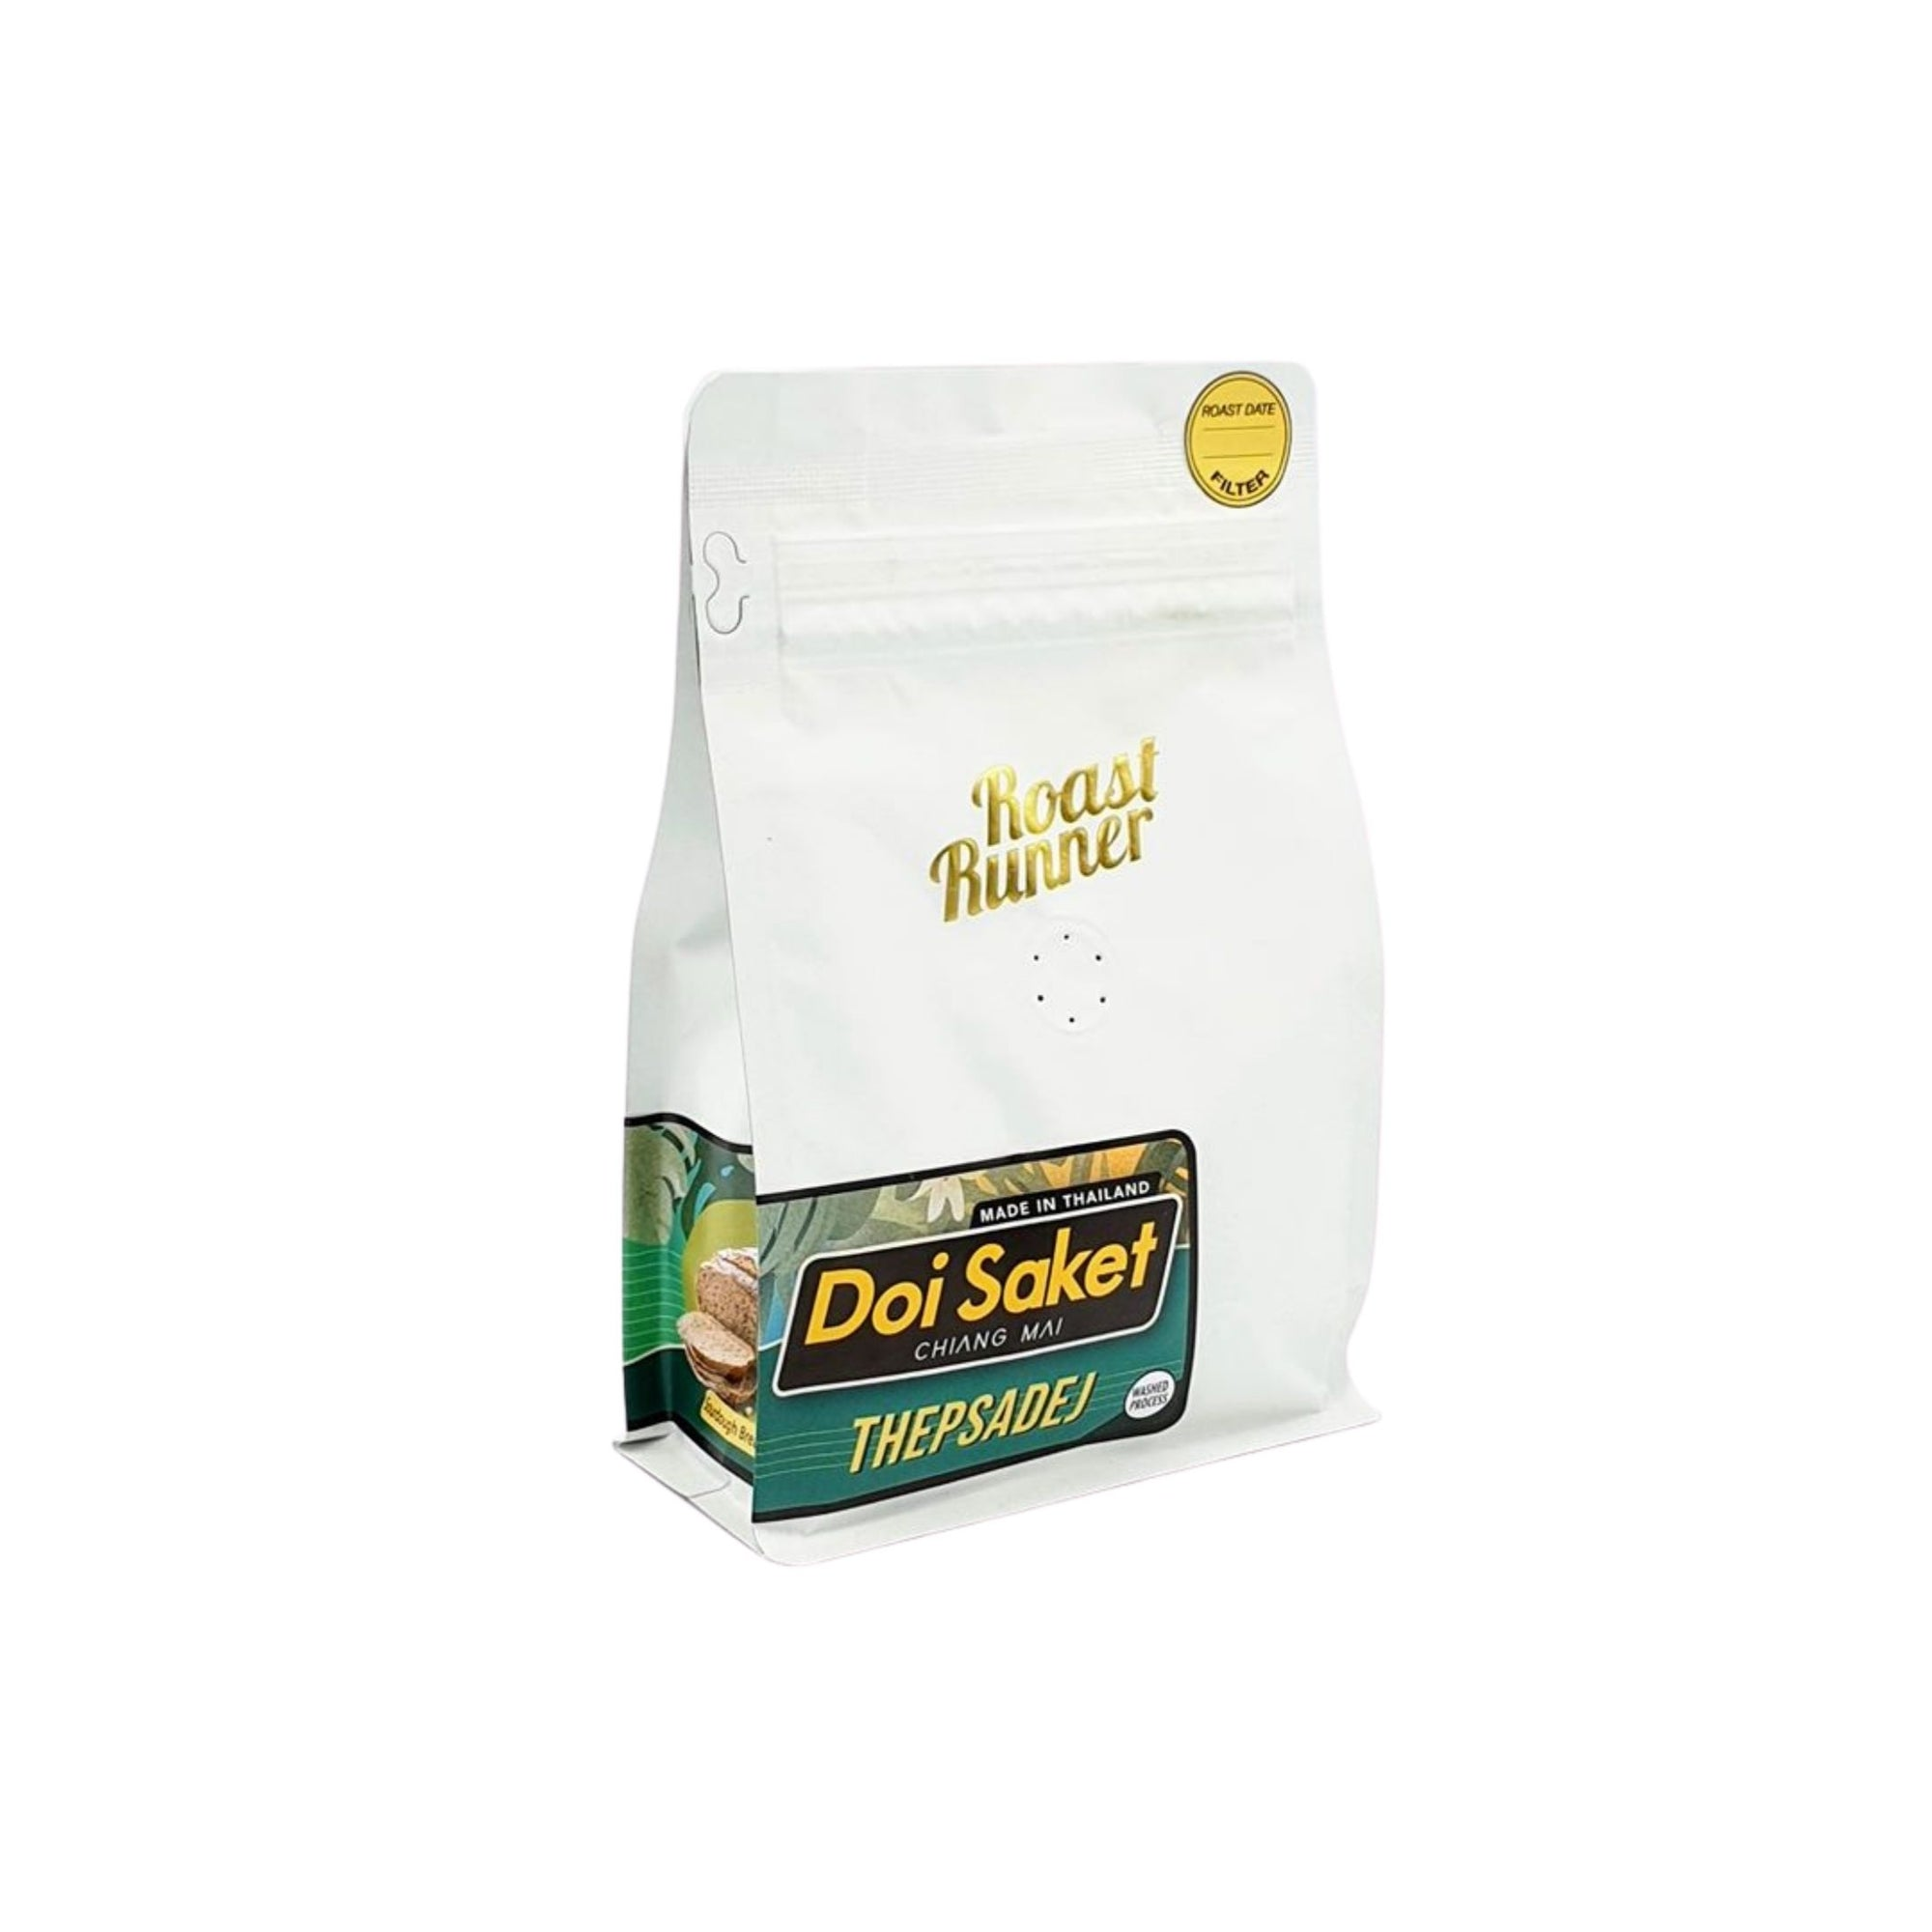 Chiang Mai Doi Saket Washed 250g